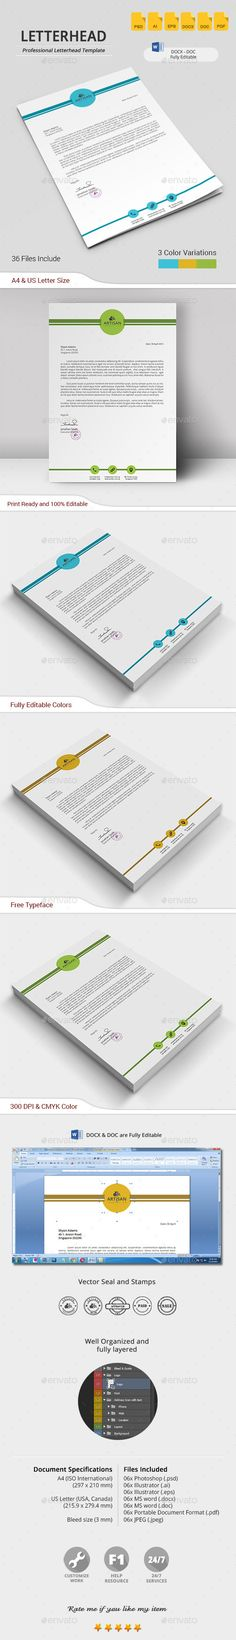 Professional Letterhead - Stationery Print Templates Letterhead - professional letterhead